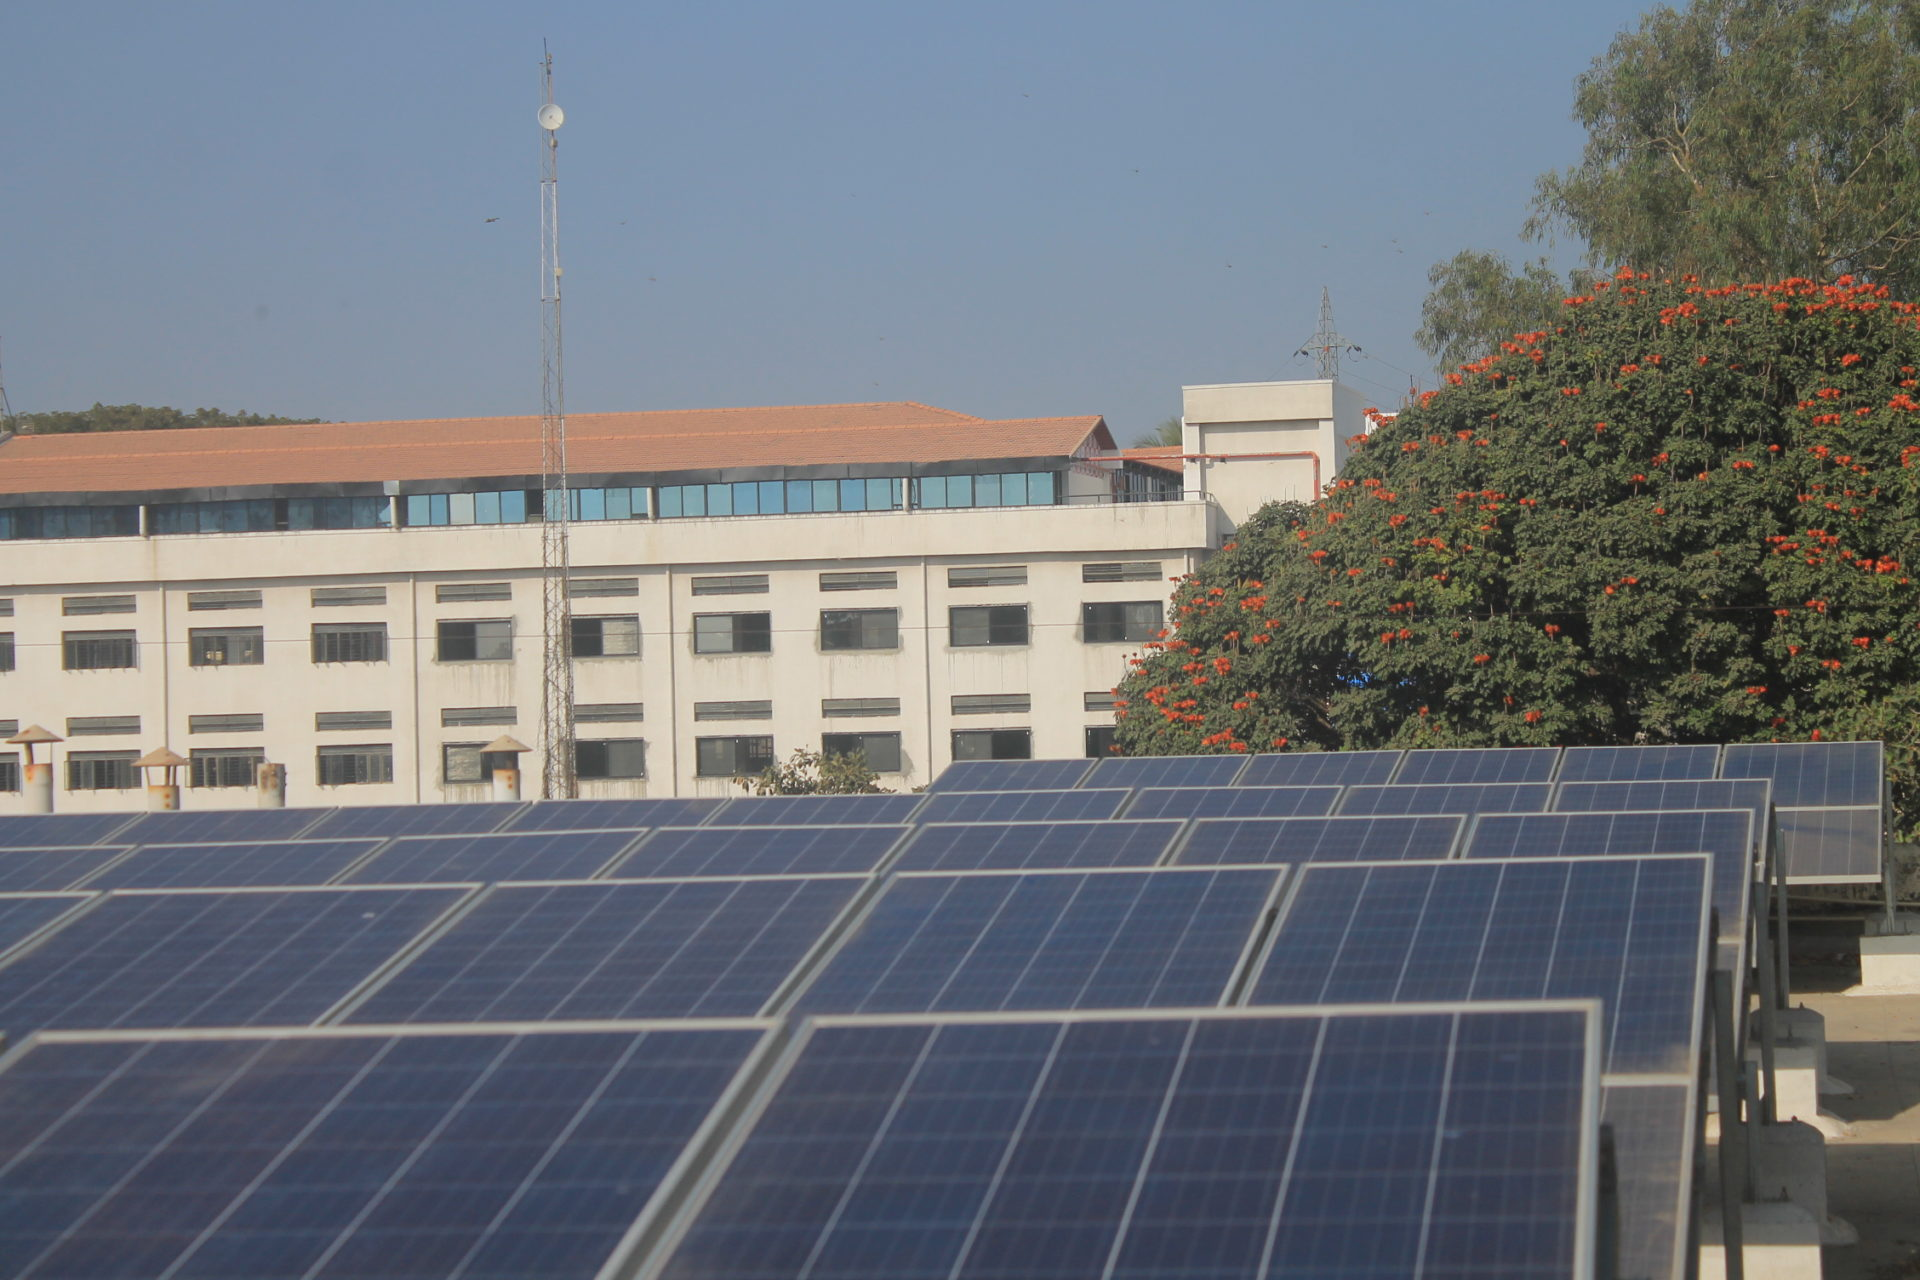 Indian Bureau of Mines Solar Power Plant